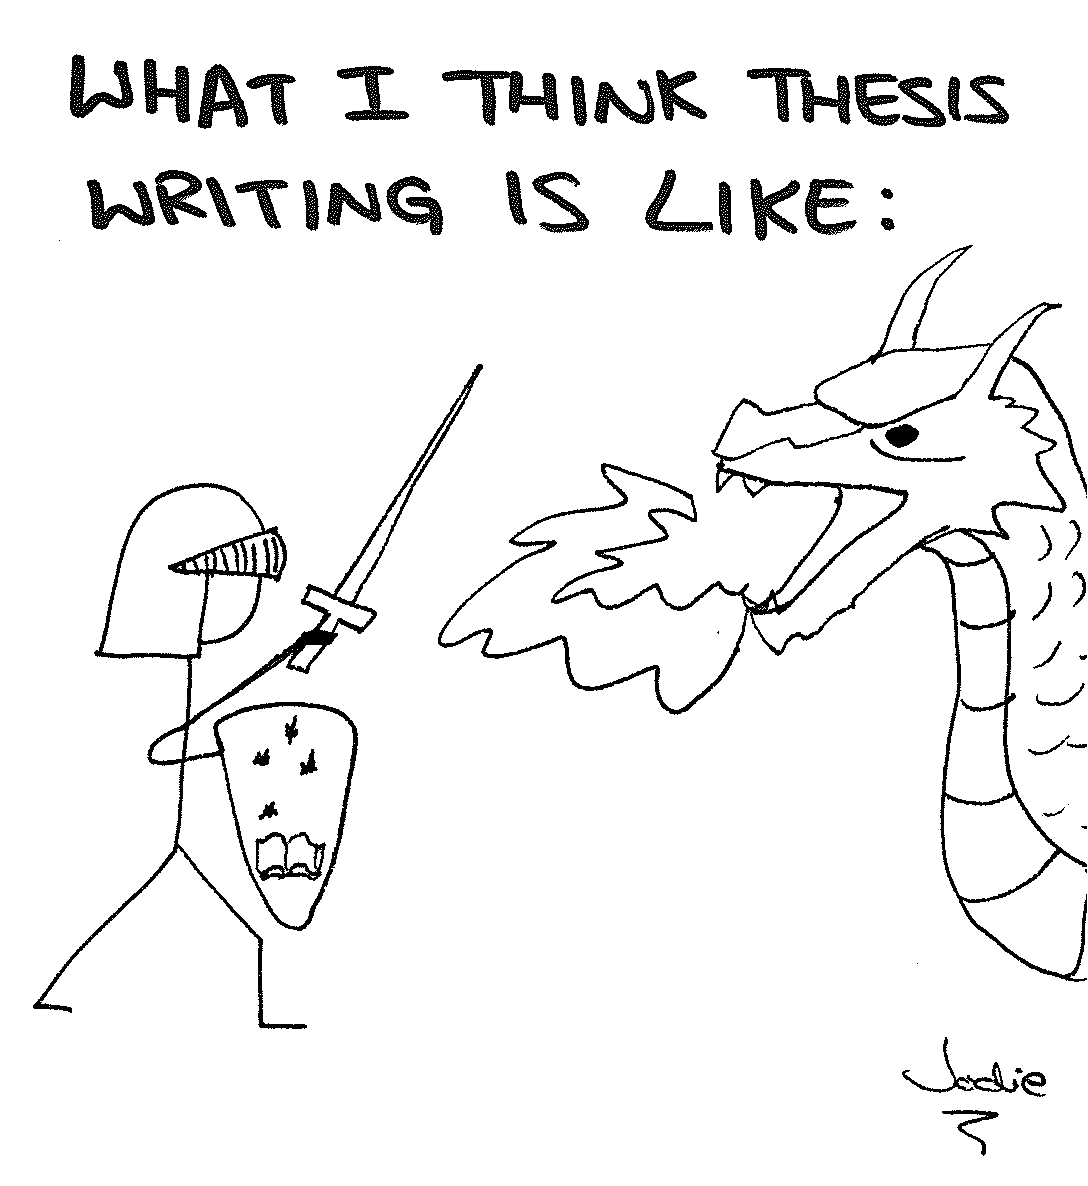 Linguistics and all that jazz: Thesis writing doodles